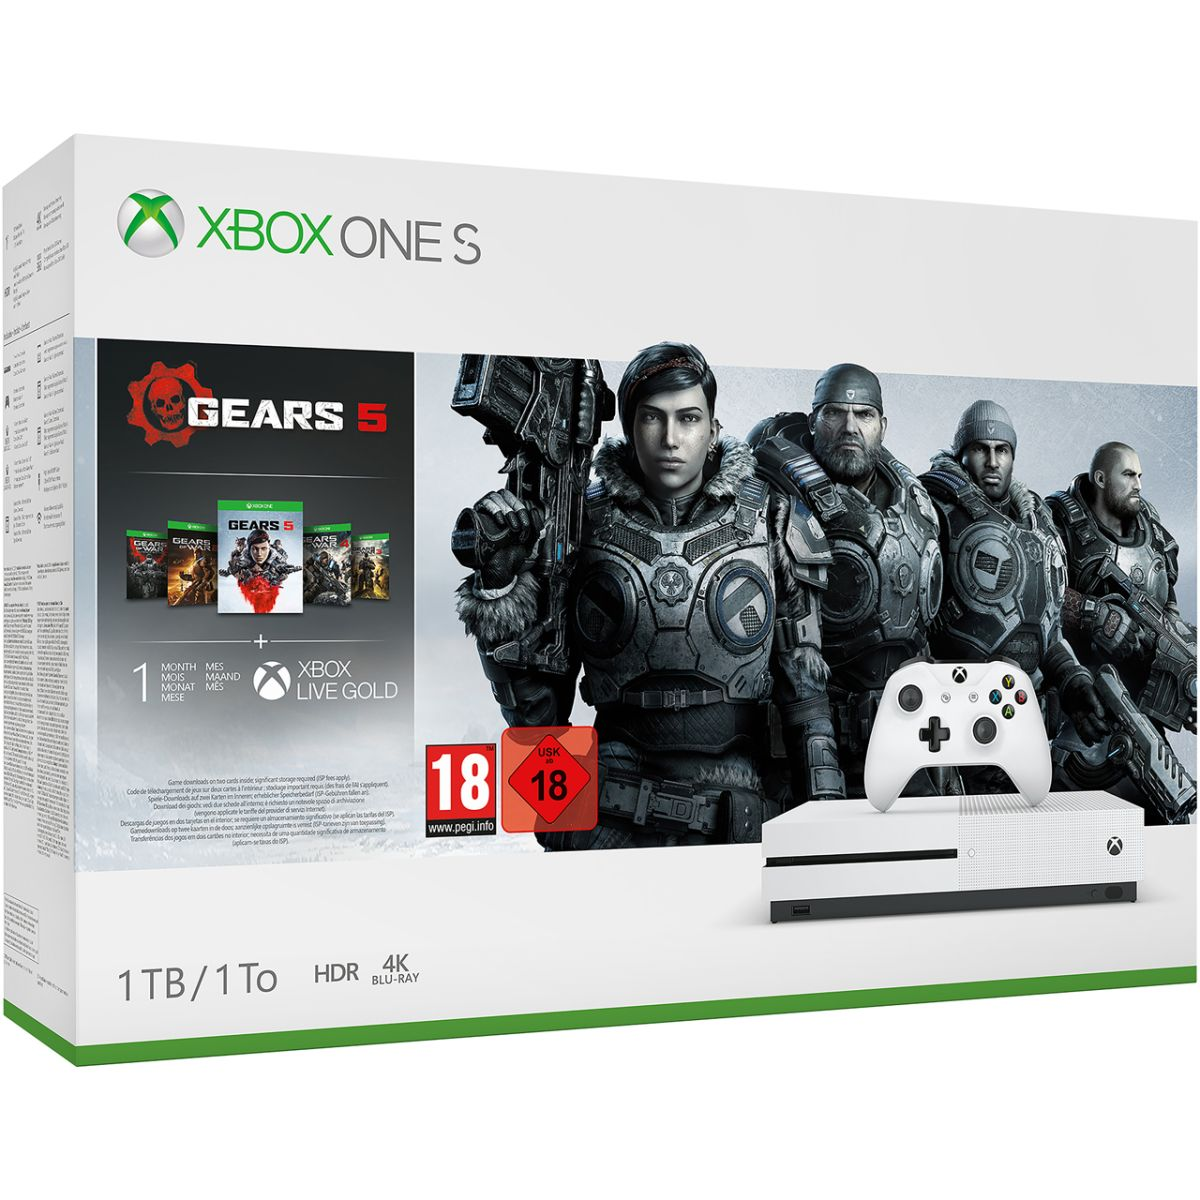 The cheapest Xbox One bundle deals and sale prices in